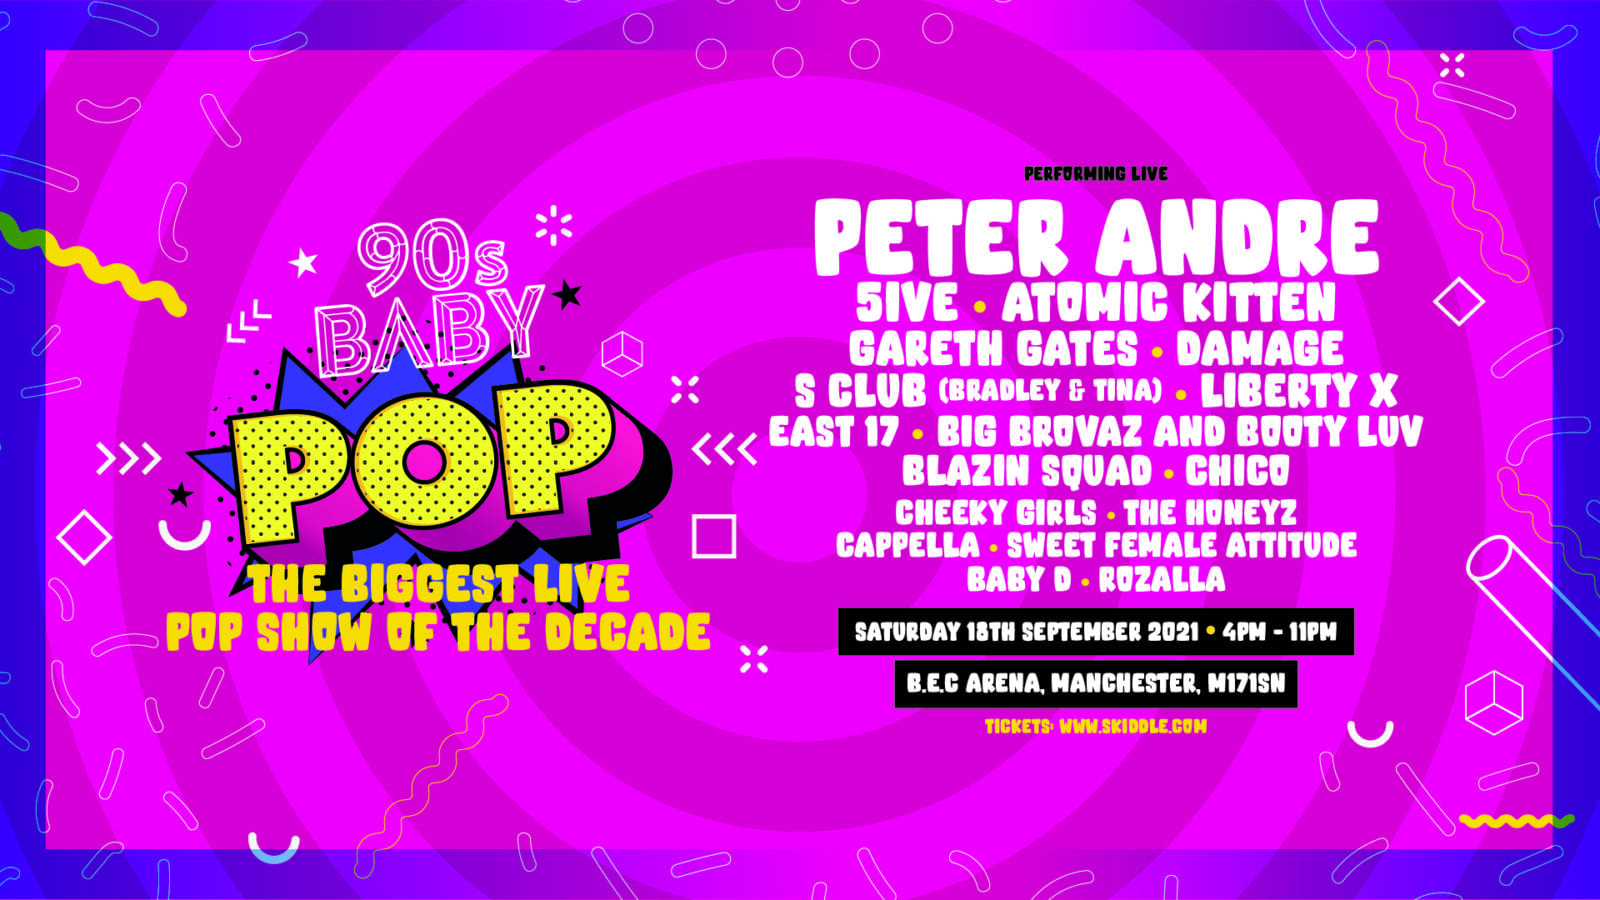 Huge 90s pop 'throwback' concert featuring Peter Andre, 5ive and Atomic Kitten coming to Manchester, The Manc